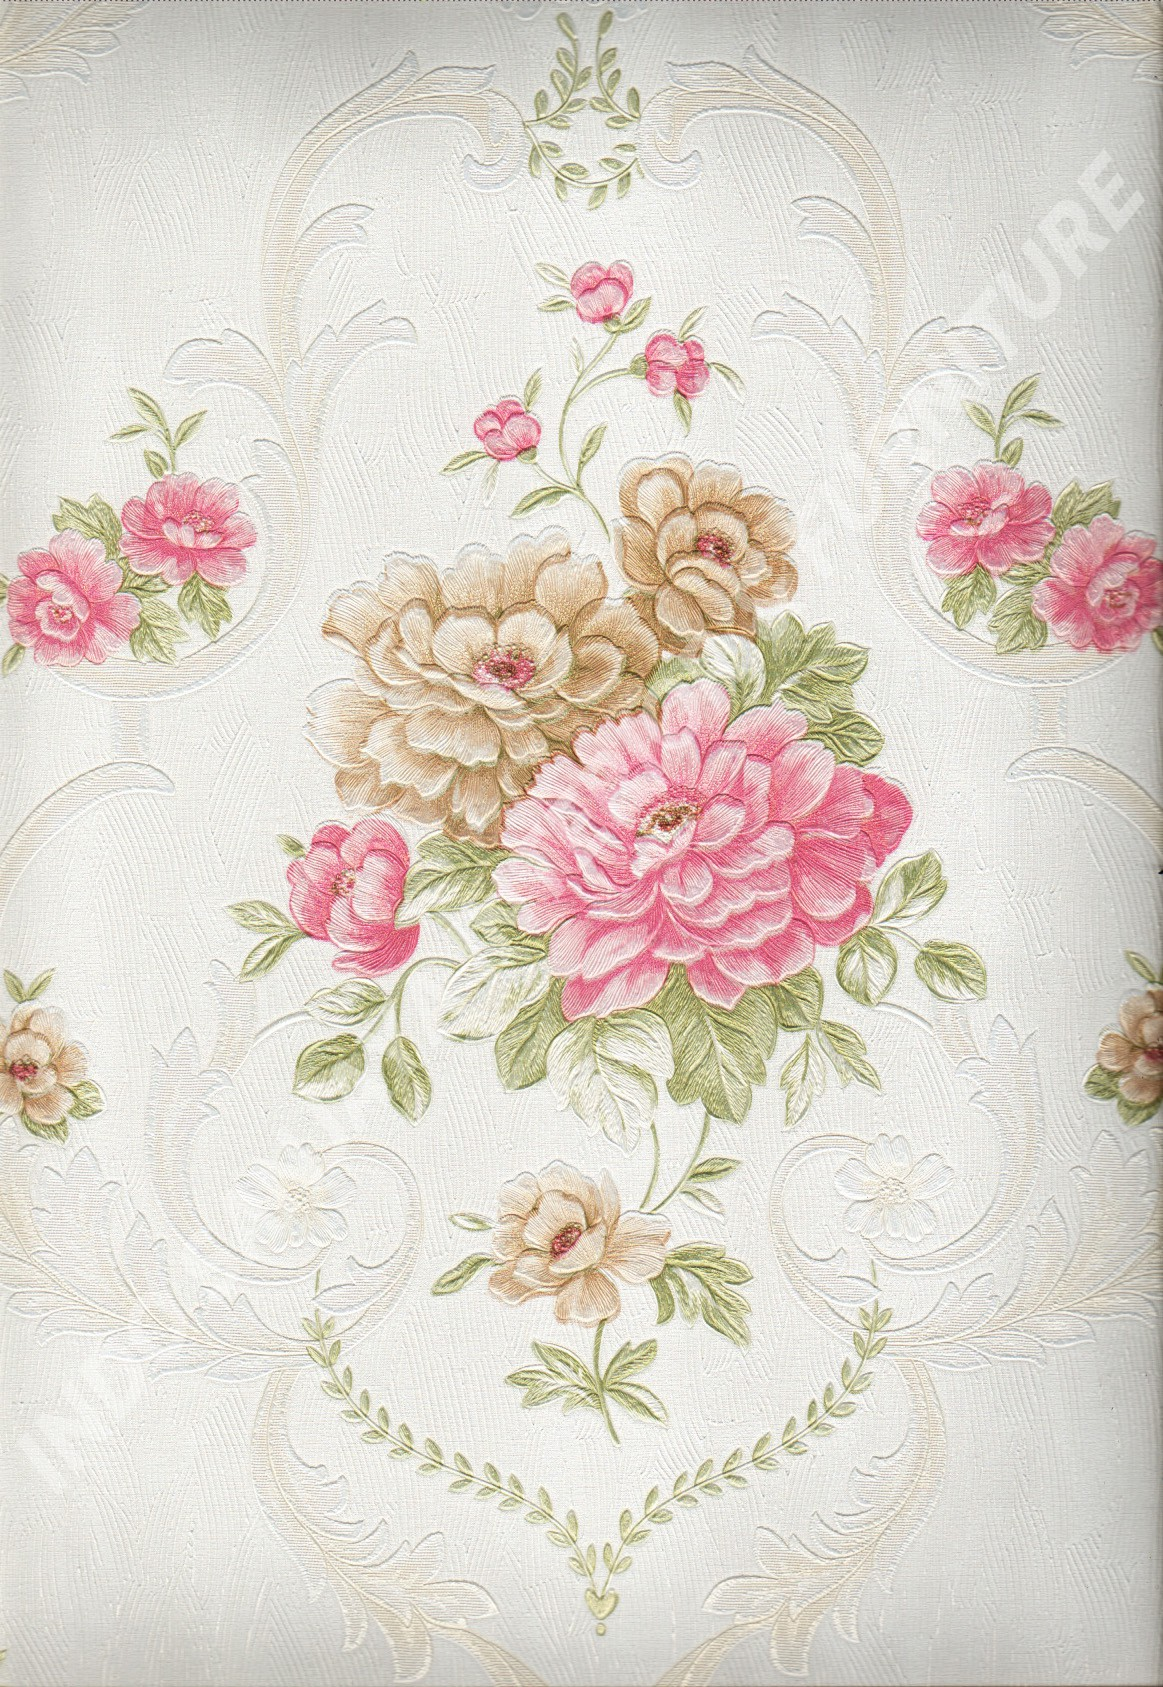 wallpaper   Wallpaper Bunga 8810:8810 corak  warna